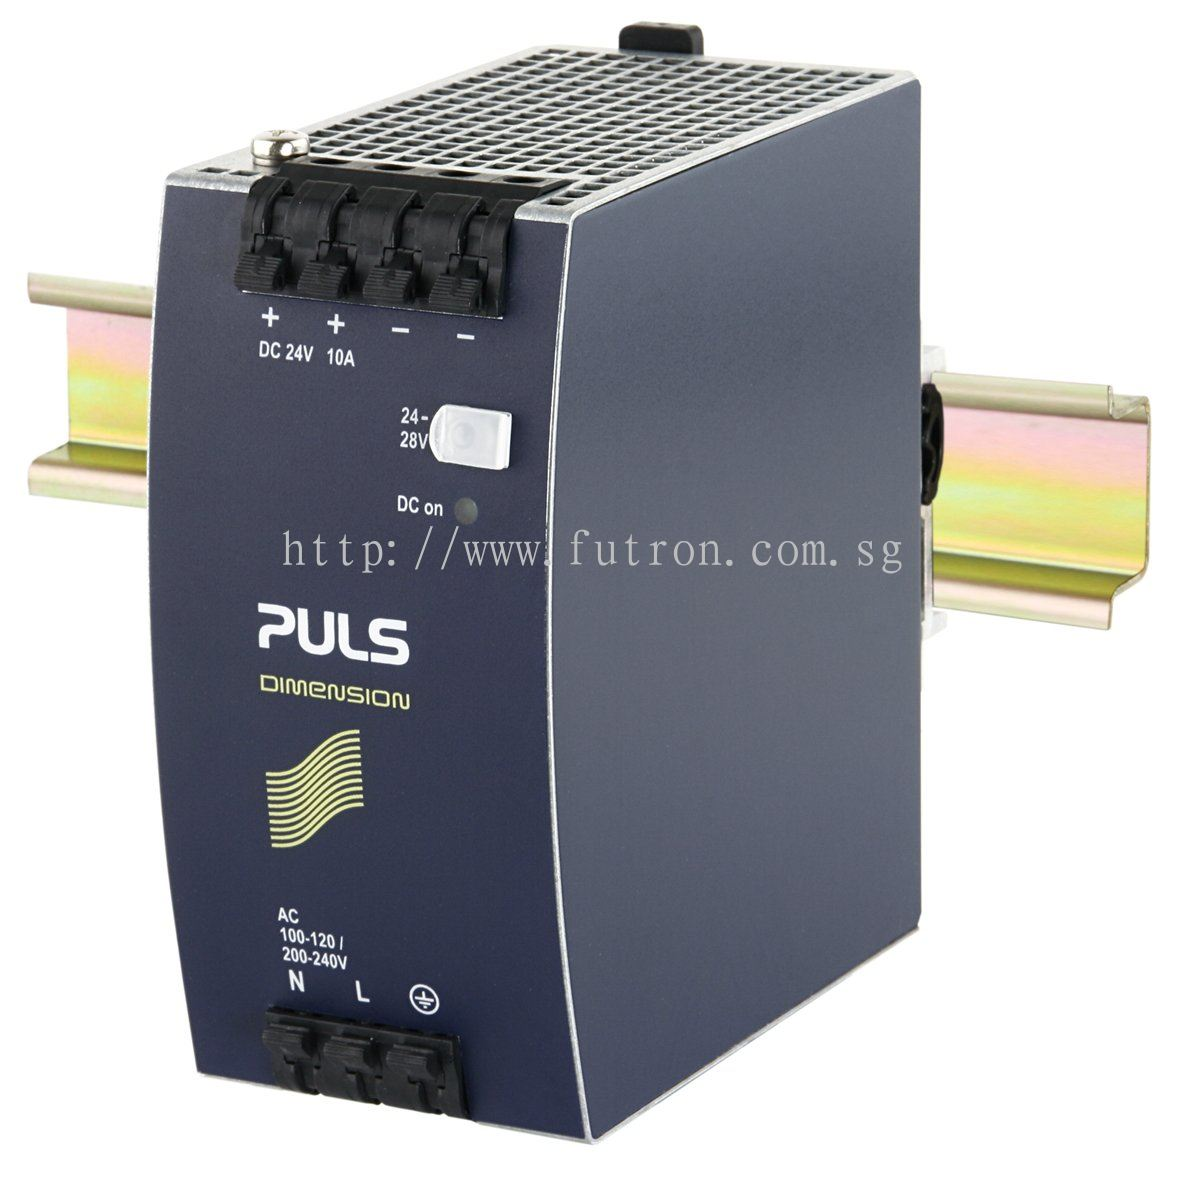 Futron Electronics Pte Ltd:CS10.241-S1